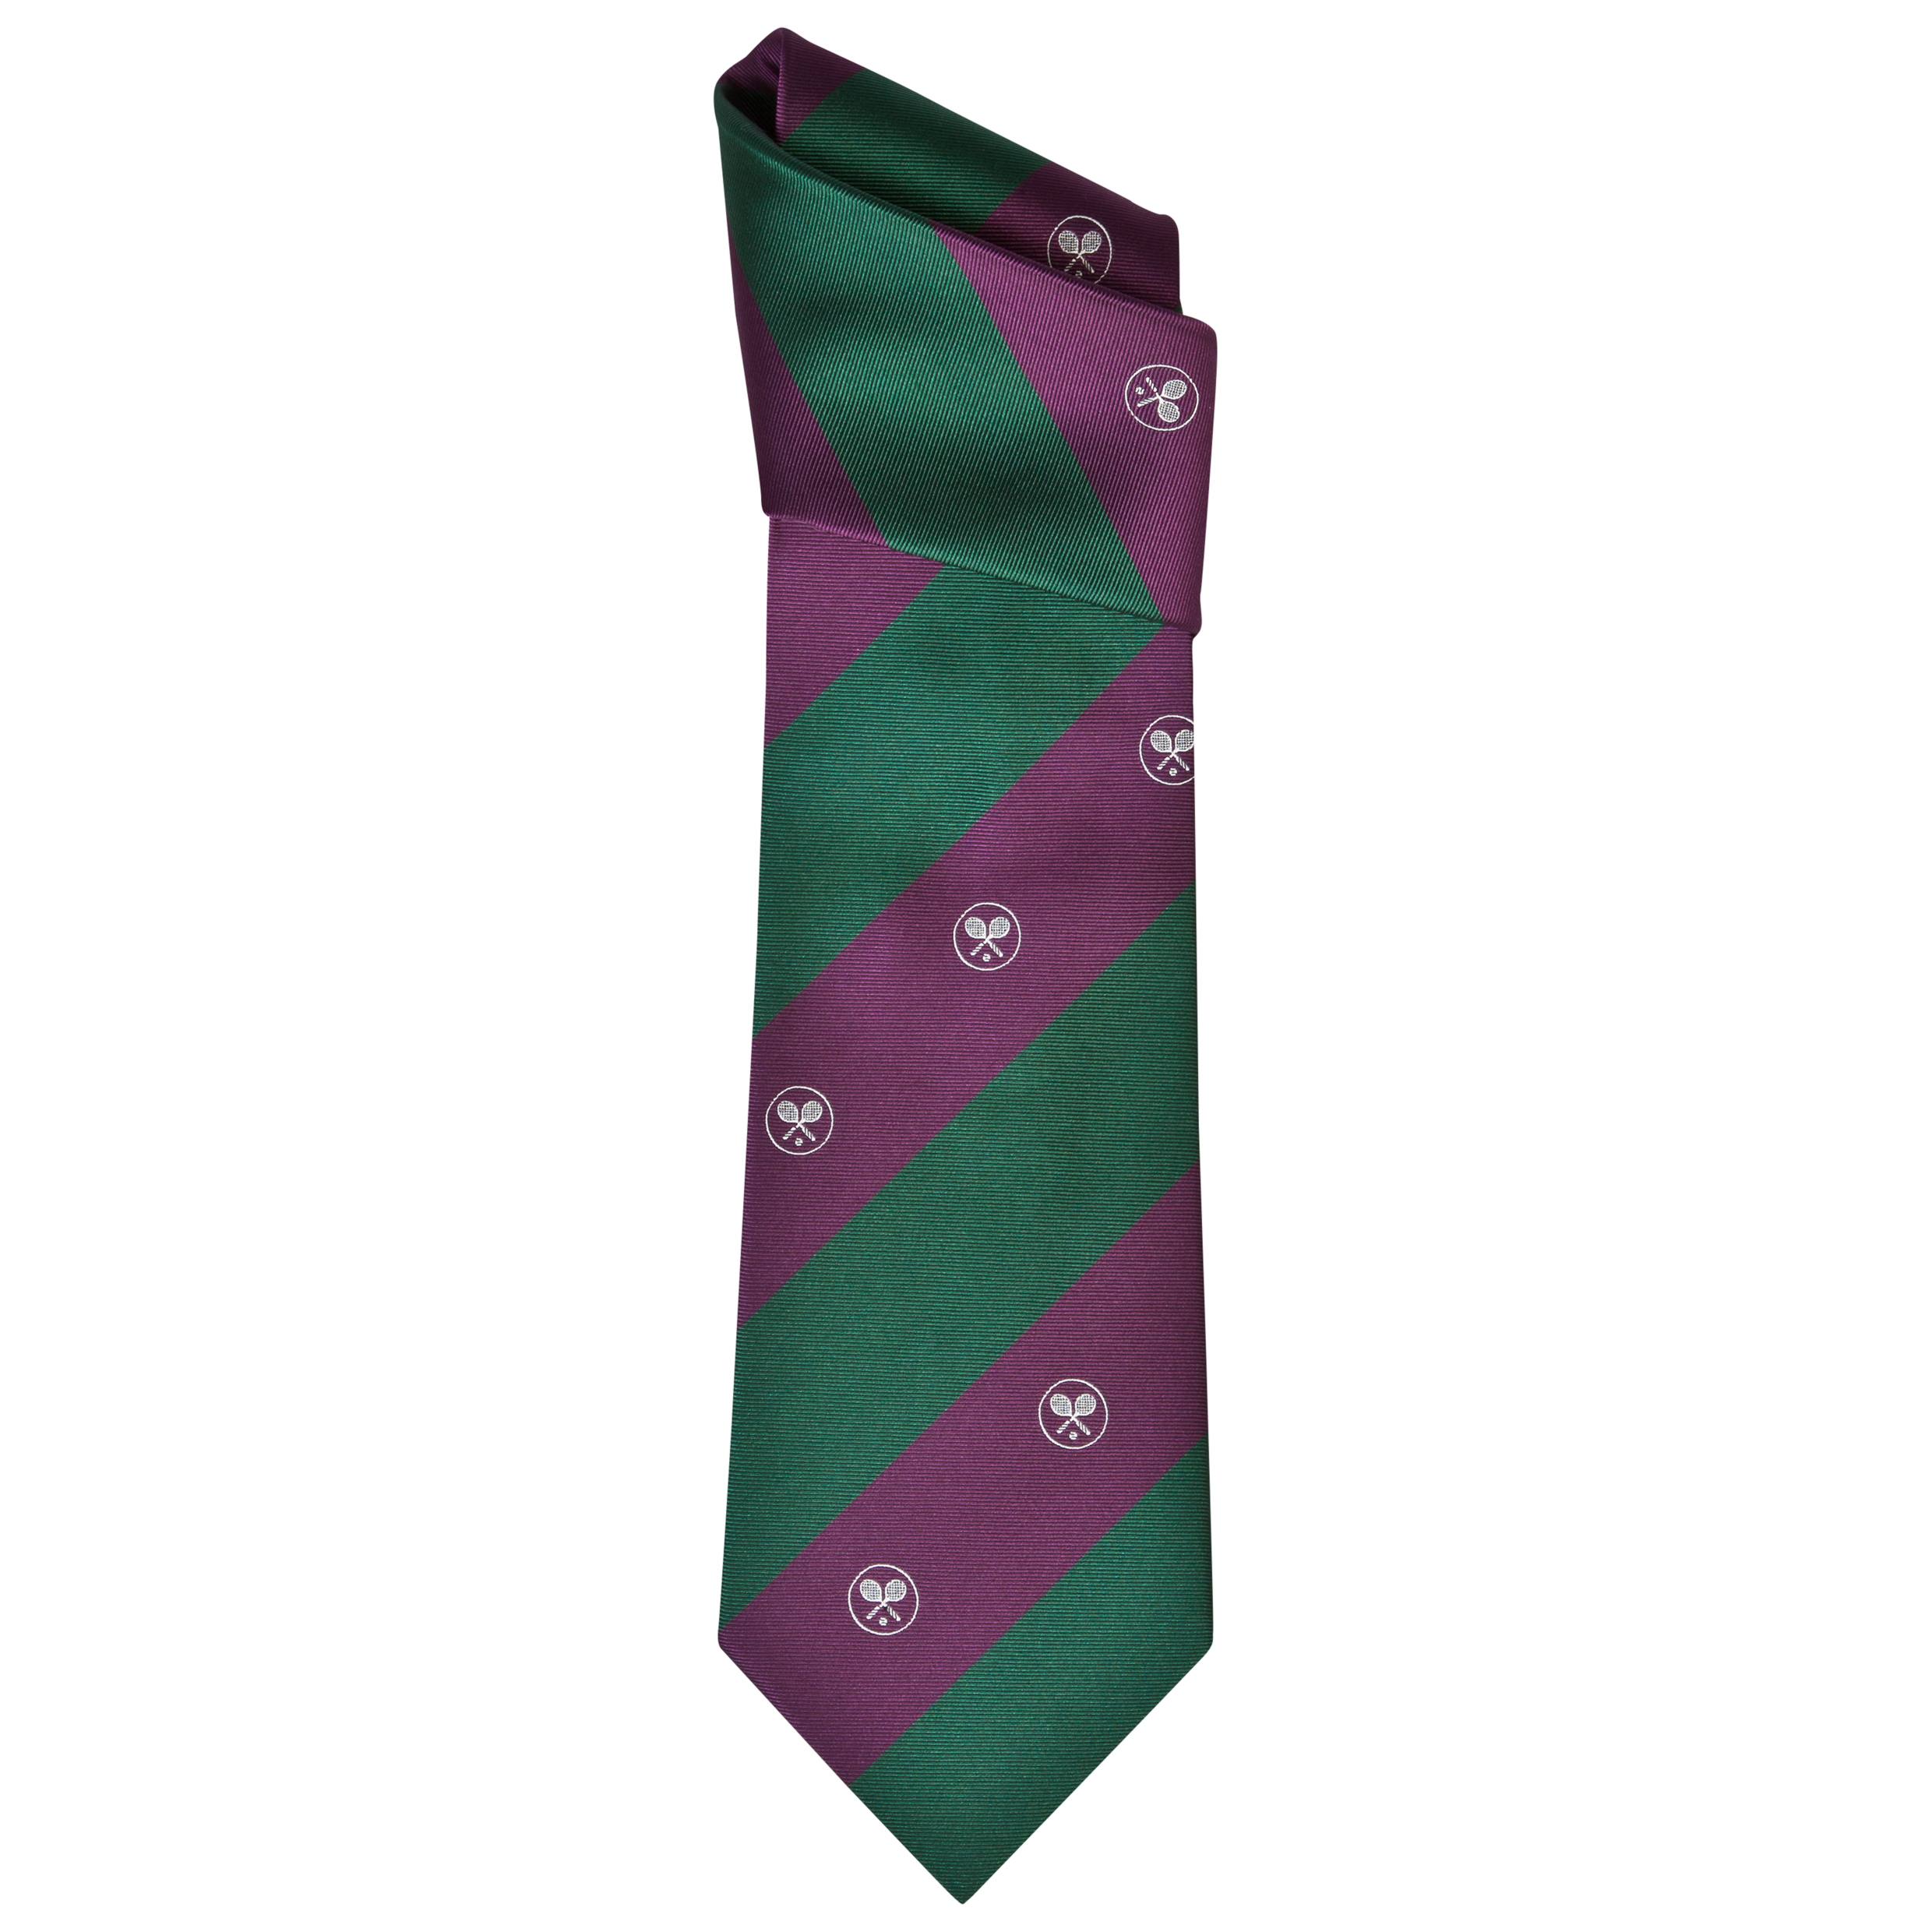 Wimbledon Tie Stripe and Crossed Rackets - Purple/Green